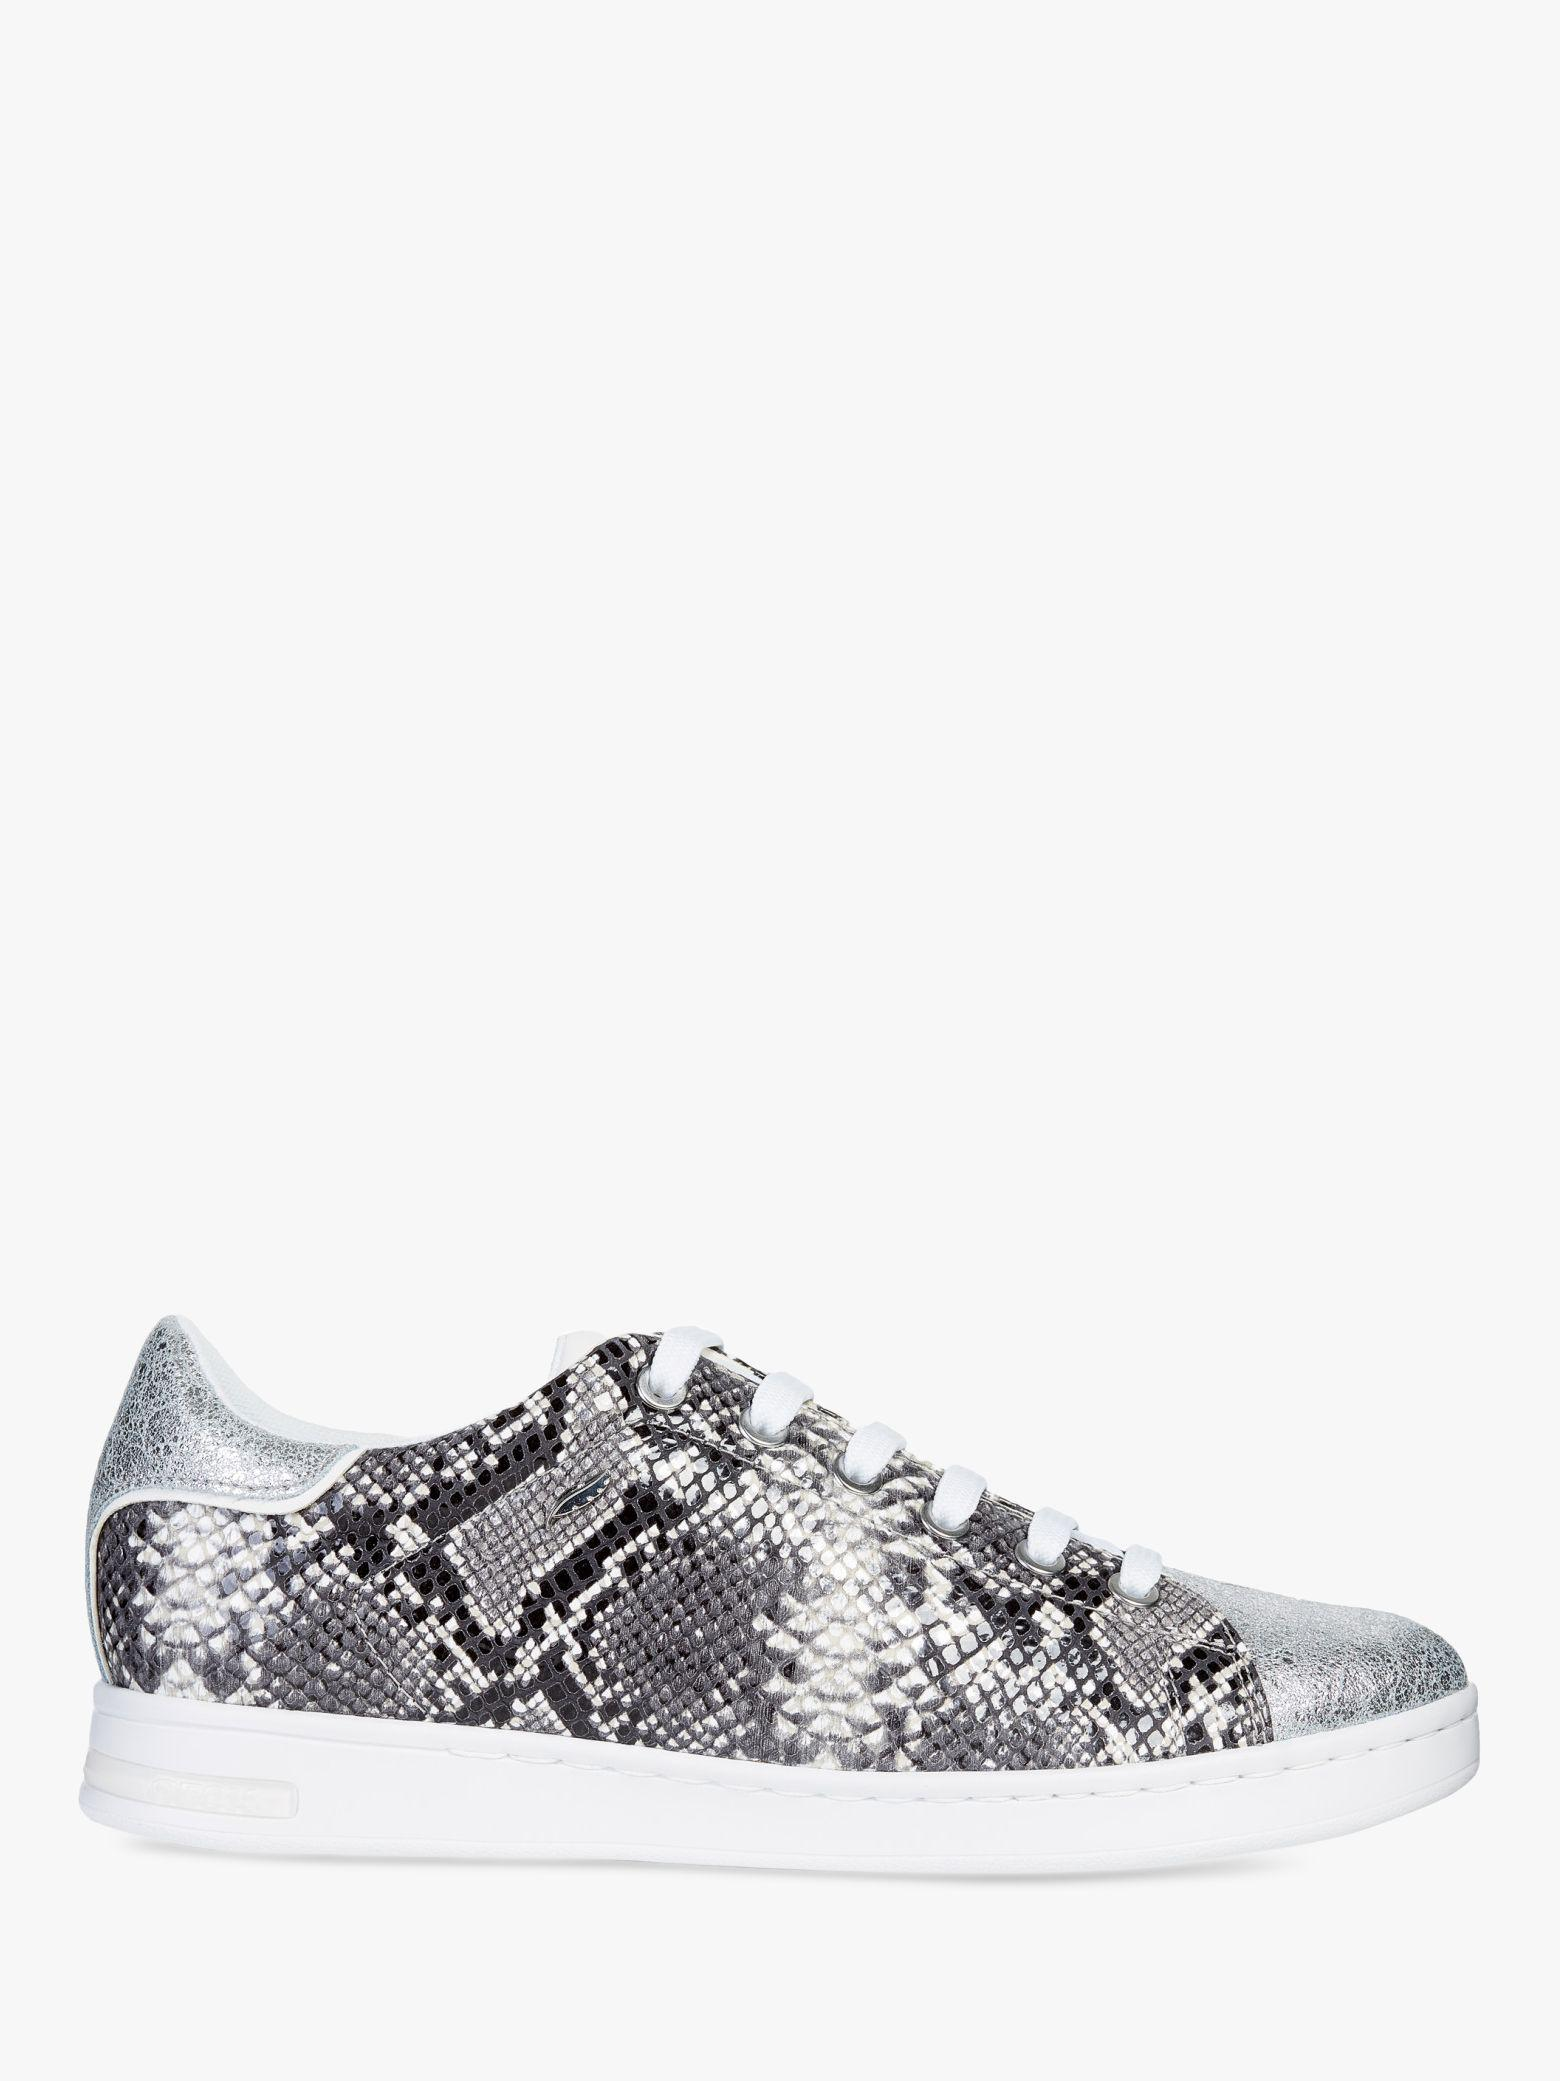 aaee608d5406eb Geox Women s Jaysen Animal Print Lace Up Trainers in White - Lyst